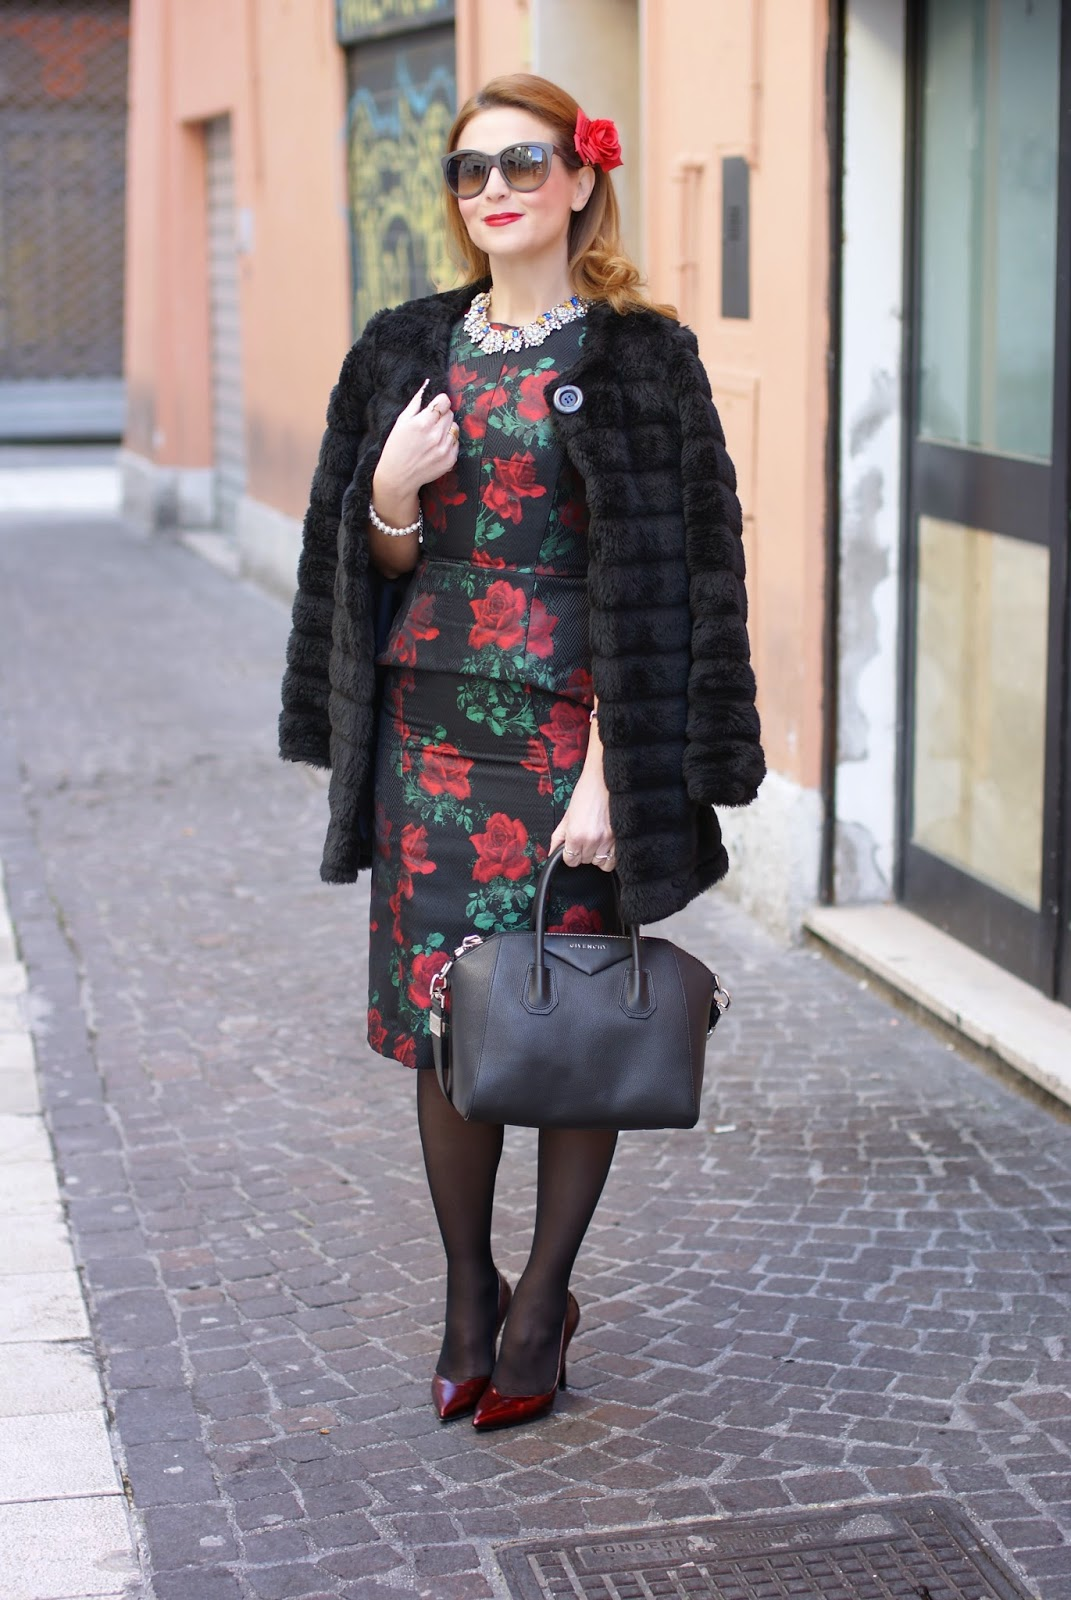 Asos rose print peplum dress in a 40s vintage style worn with a black faux fur and Givenchy Antigona bag and looking like a Dolce & Gabbana dress on Fashion and Cookies fashion blog